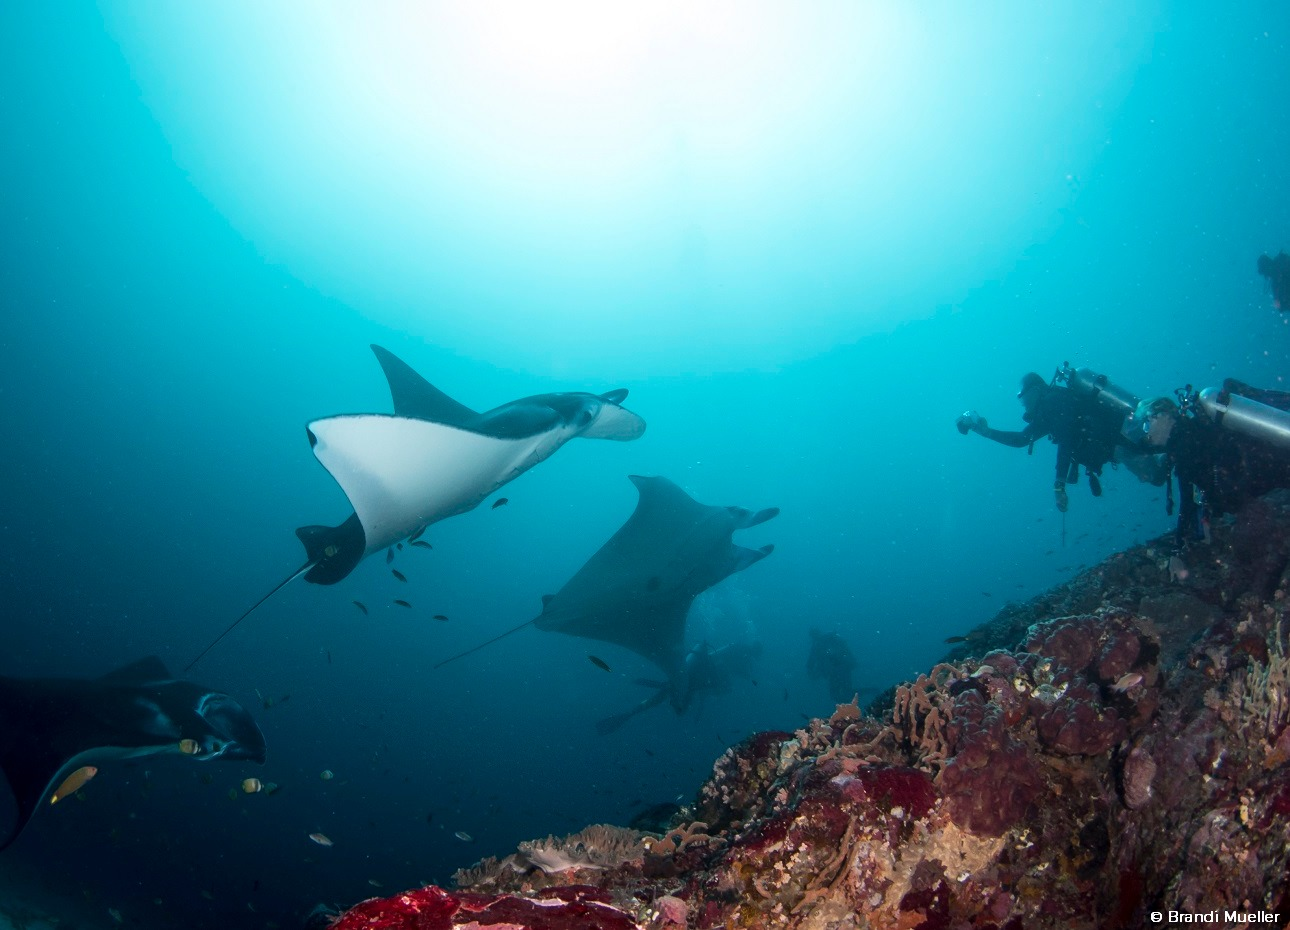 Manta rays watched by scuba divers at Indonesian reef dive site